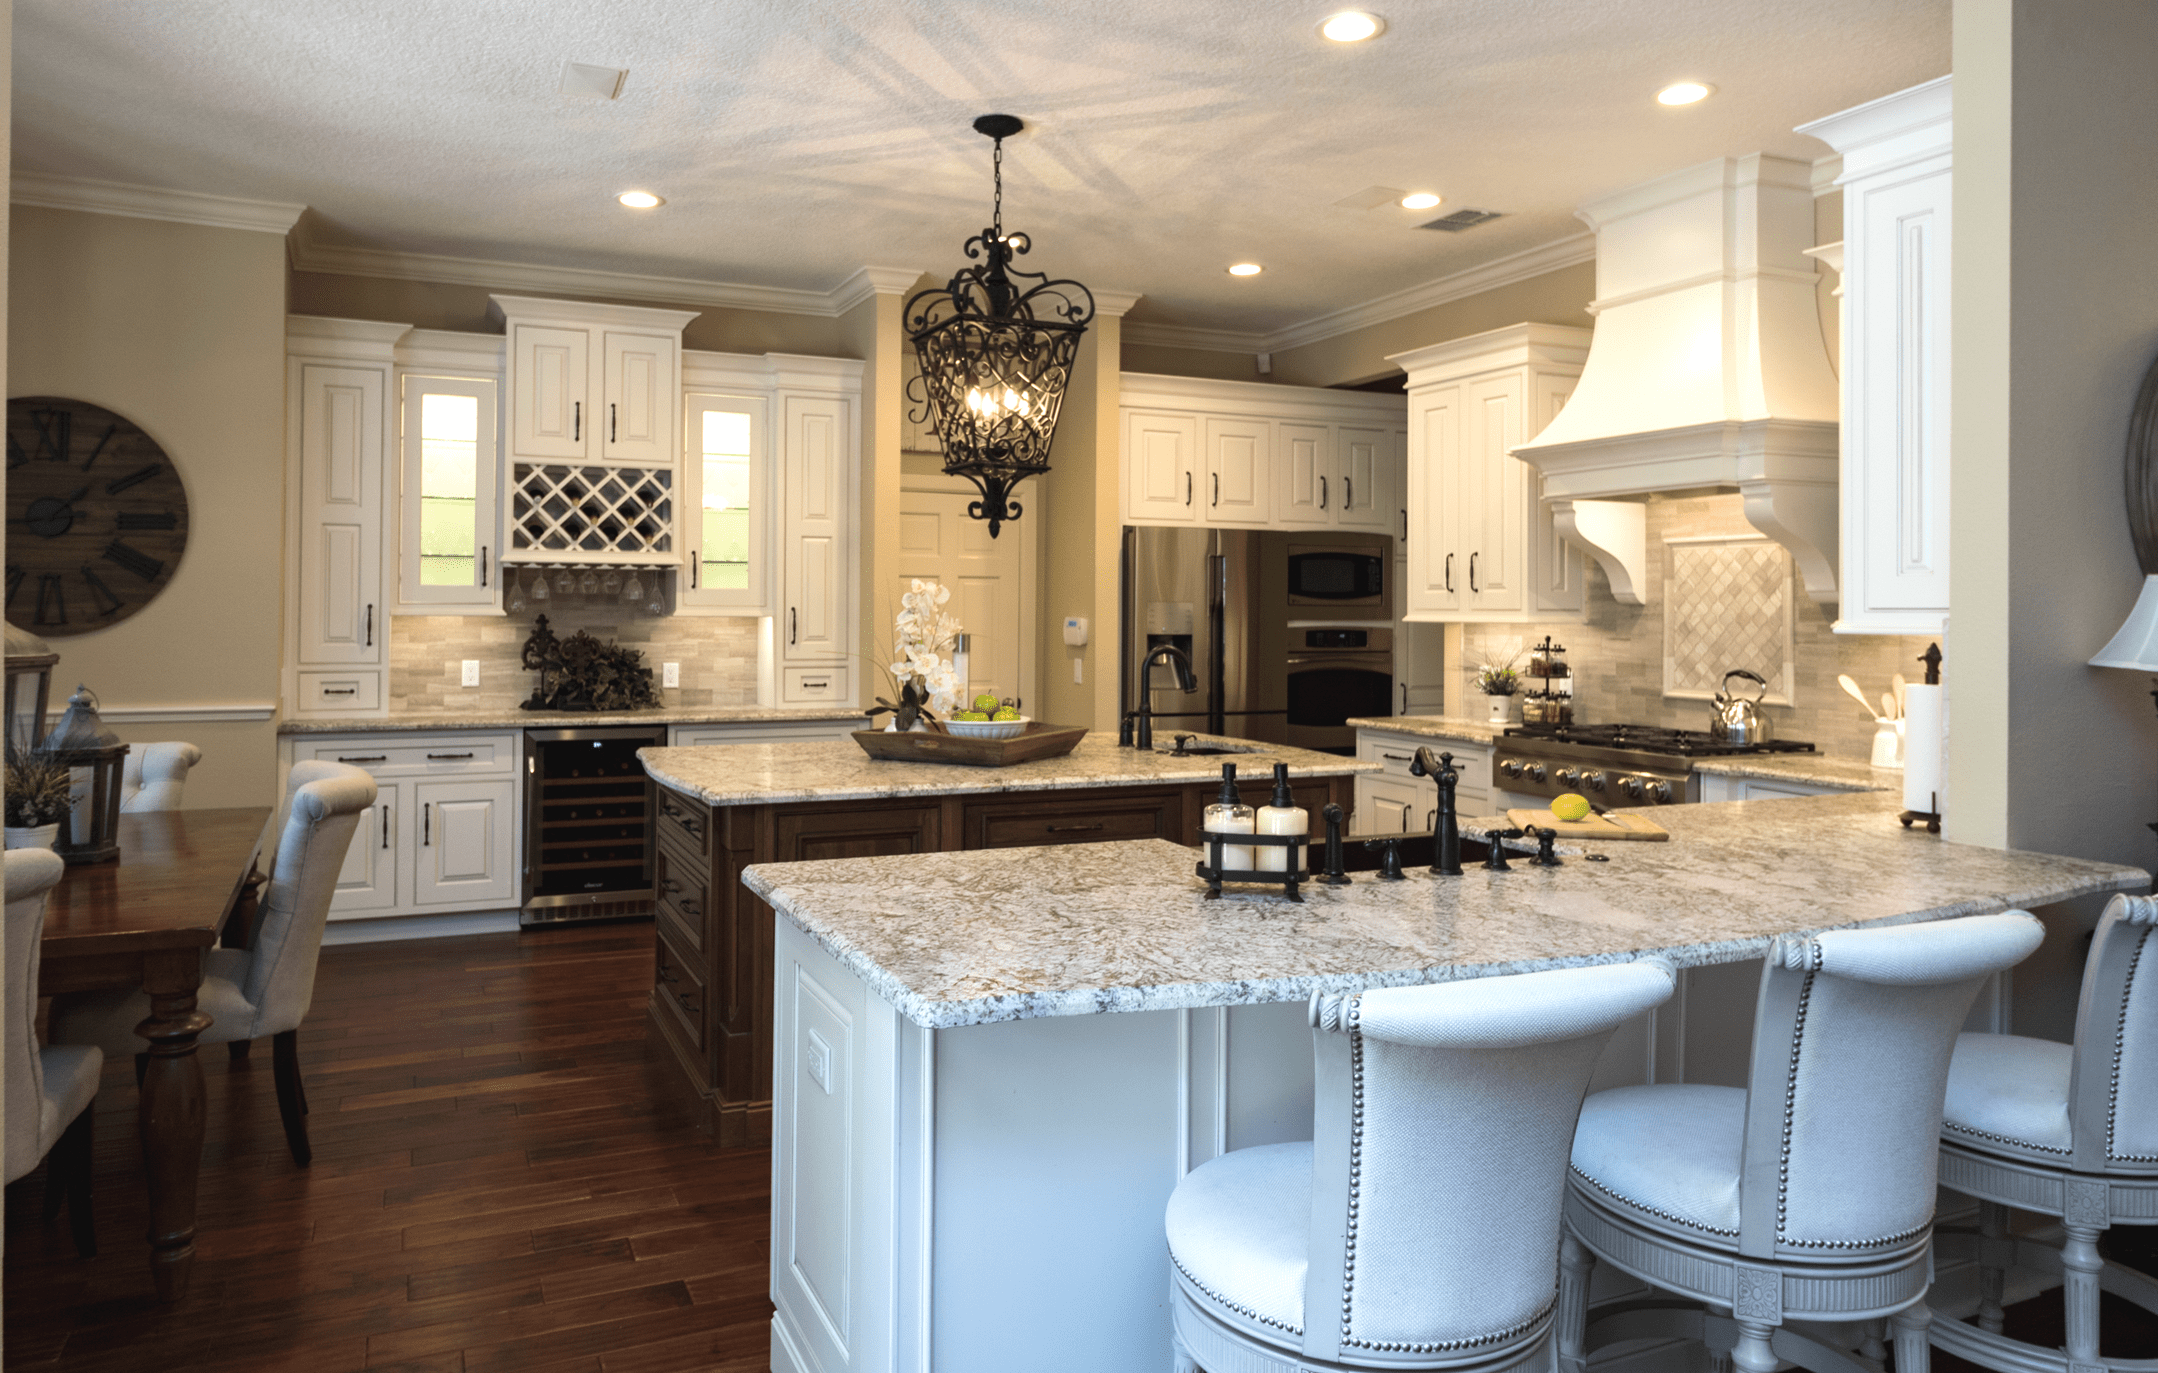 Kitchen bathroom remodeling services in orlando kbf design gallery for Bathroom remodeling orlando fl